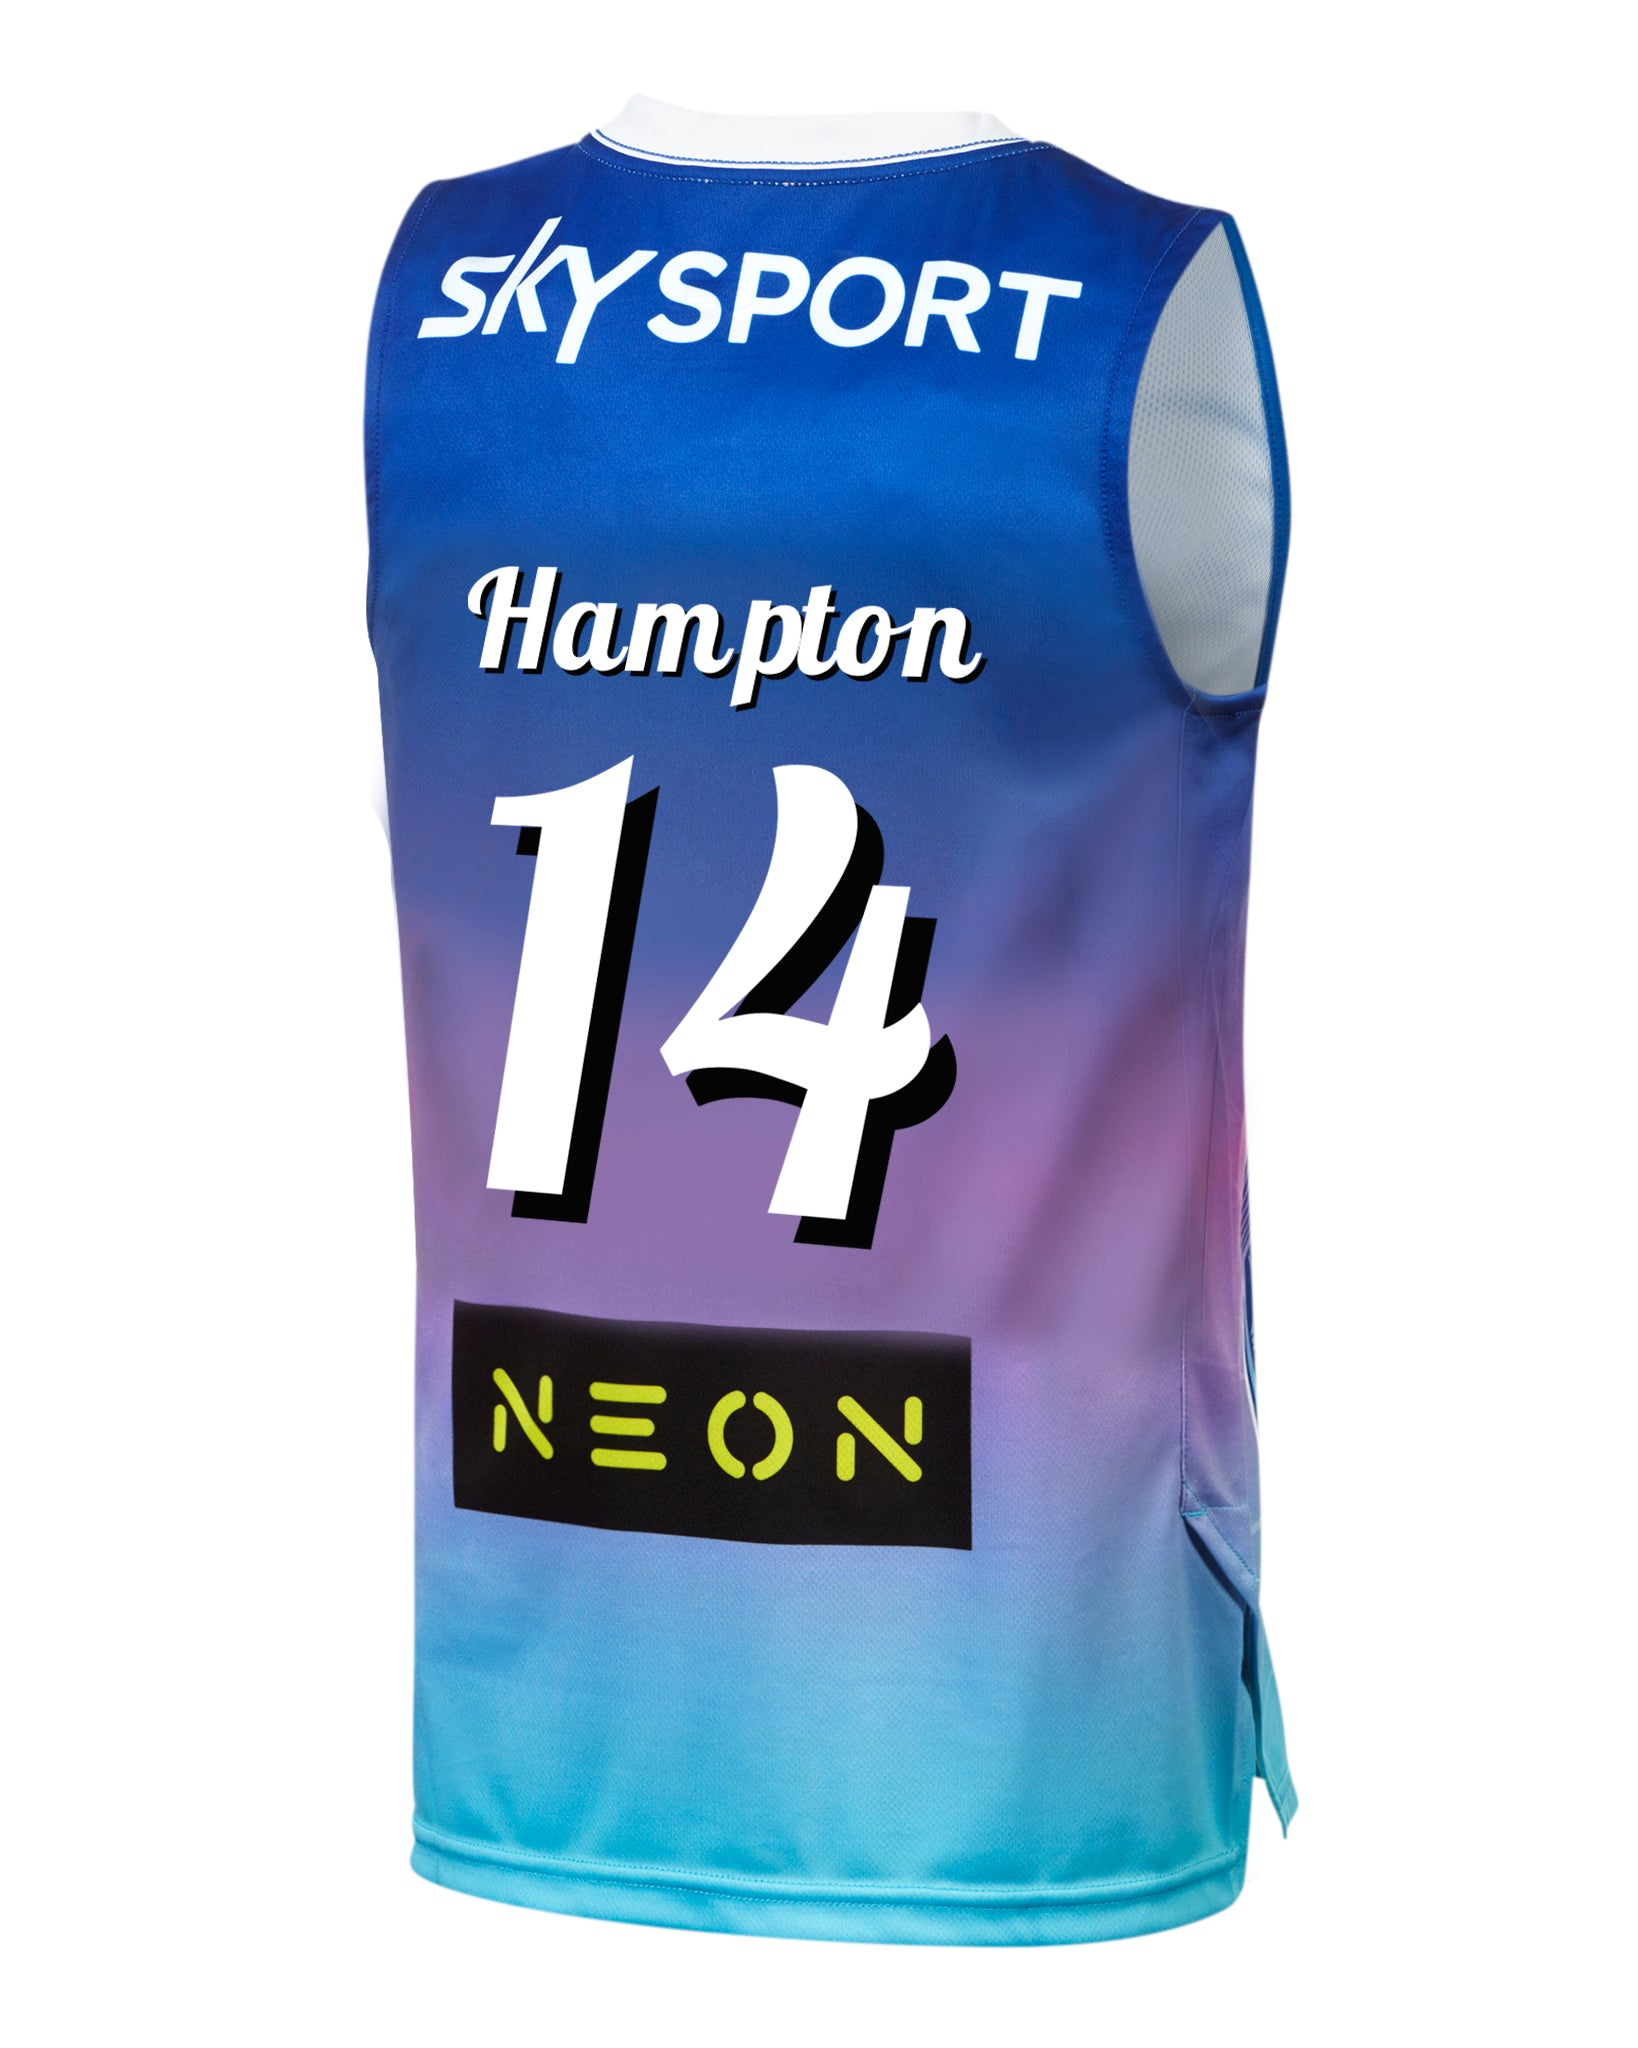 New Zealand Breakers 19/20 Youth Authentic City Jersey - RJ Hampton